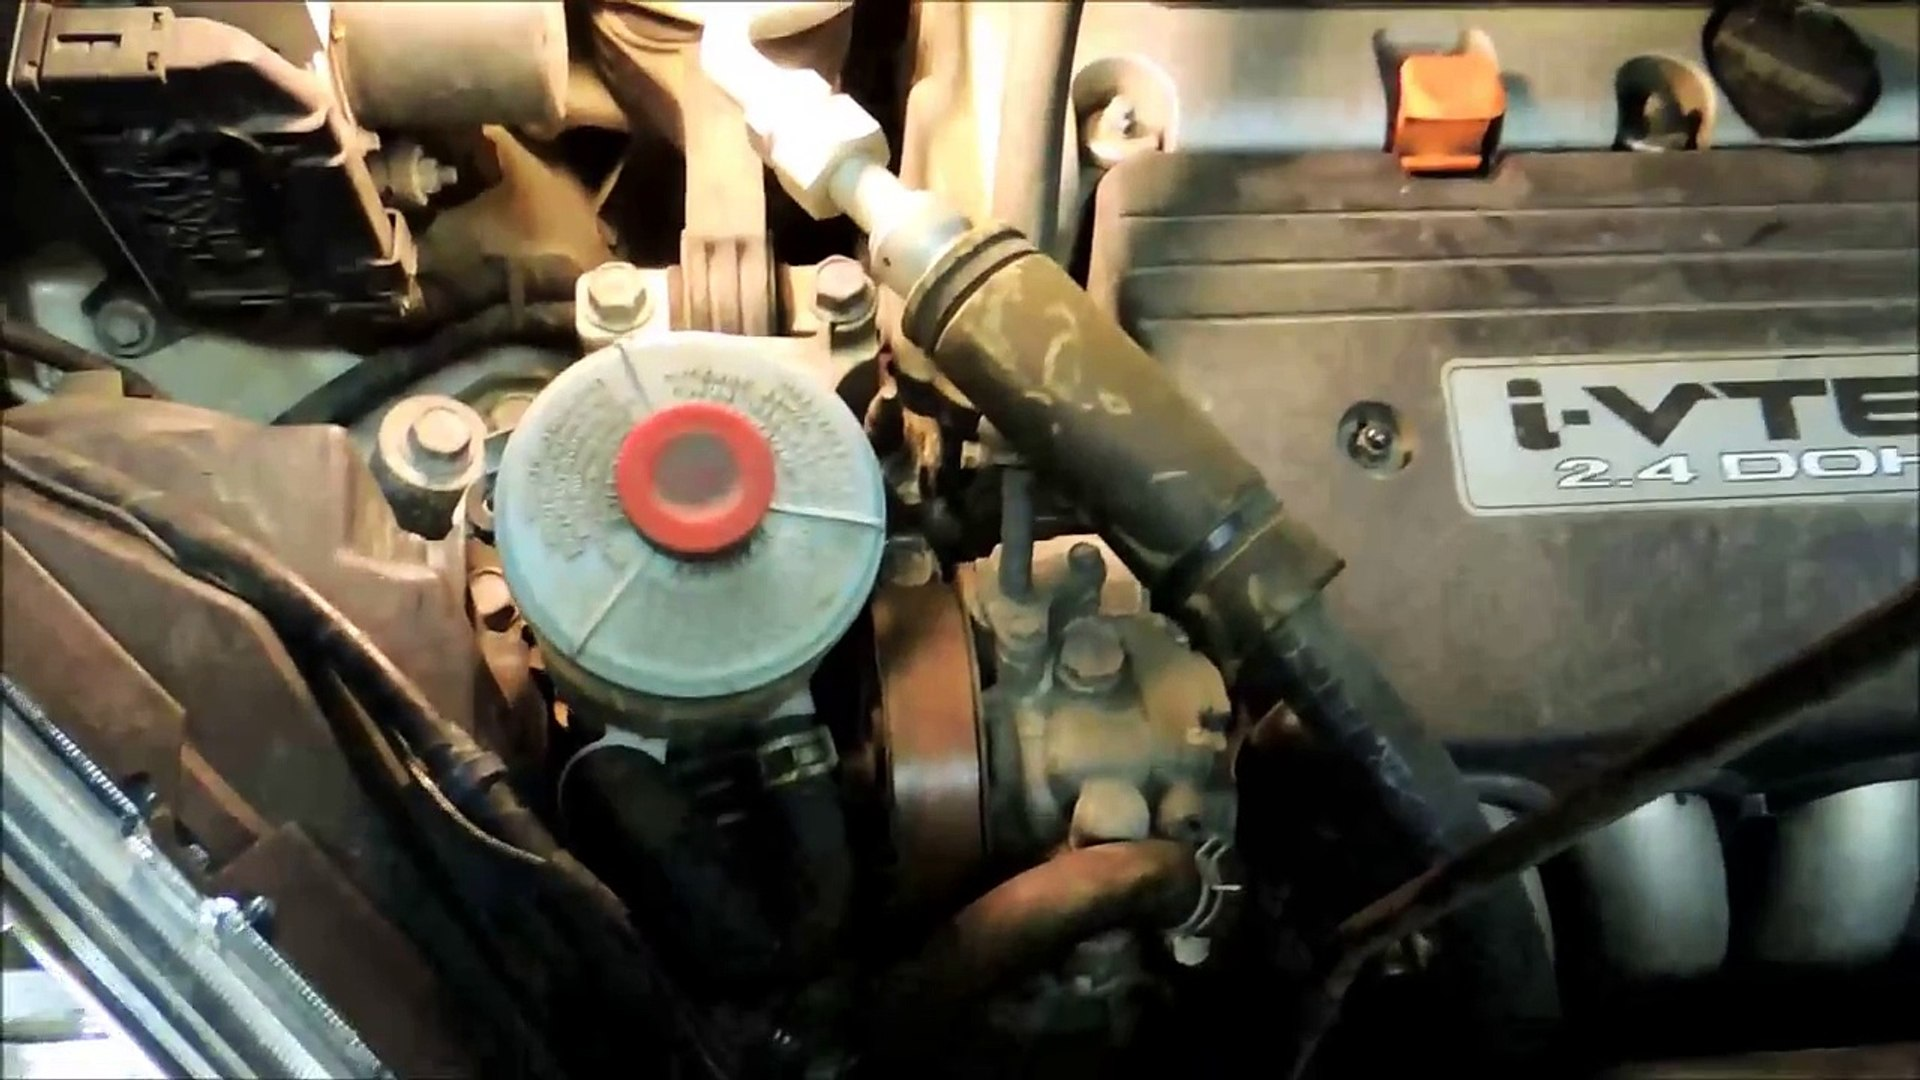 honda cr-v serpentine belt installation 2007 - 2011 in a half hour with no  special tools - video dailymotion